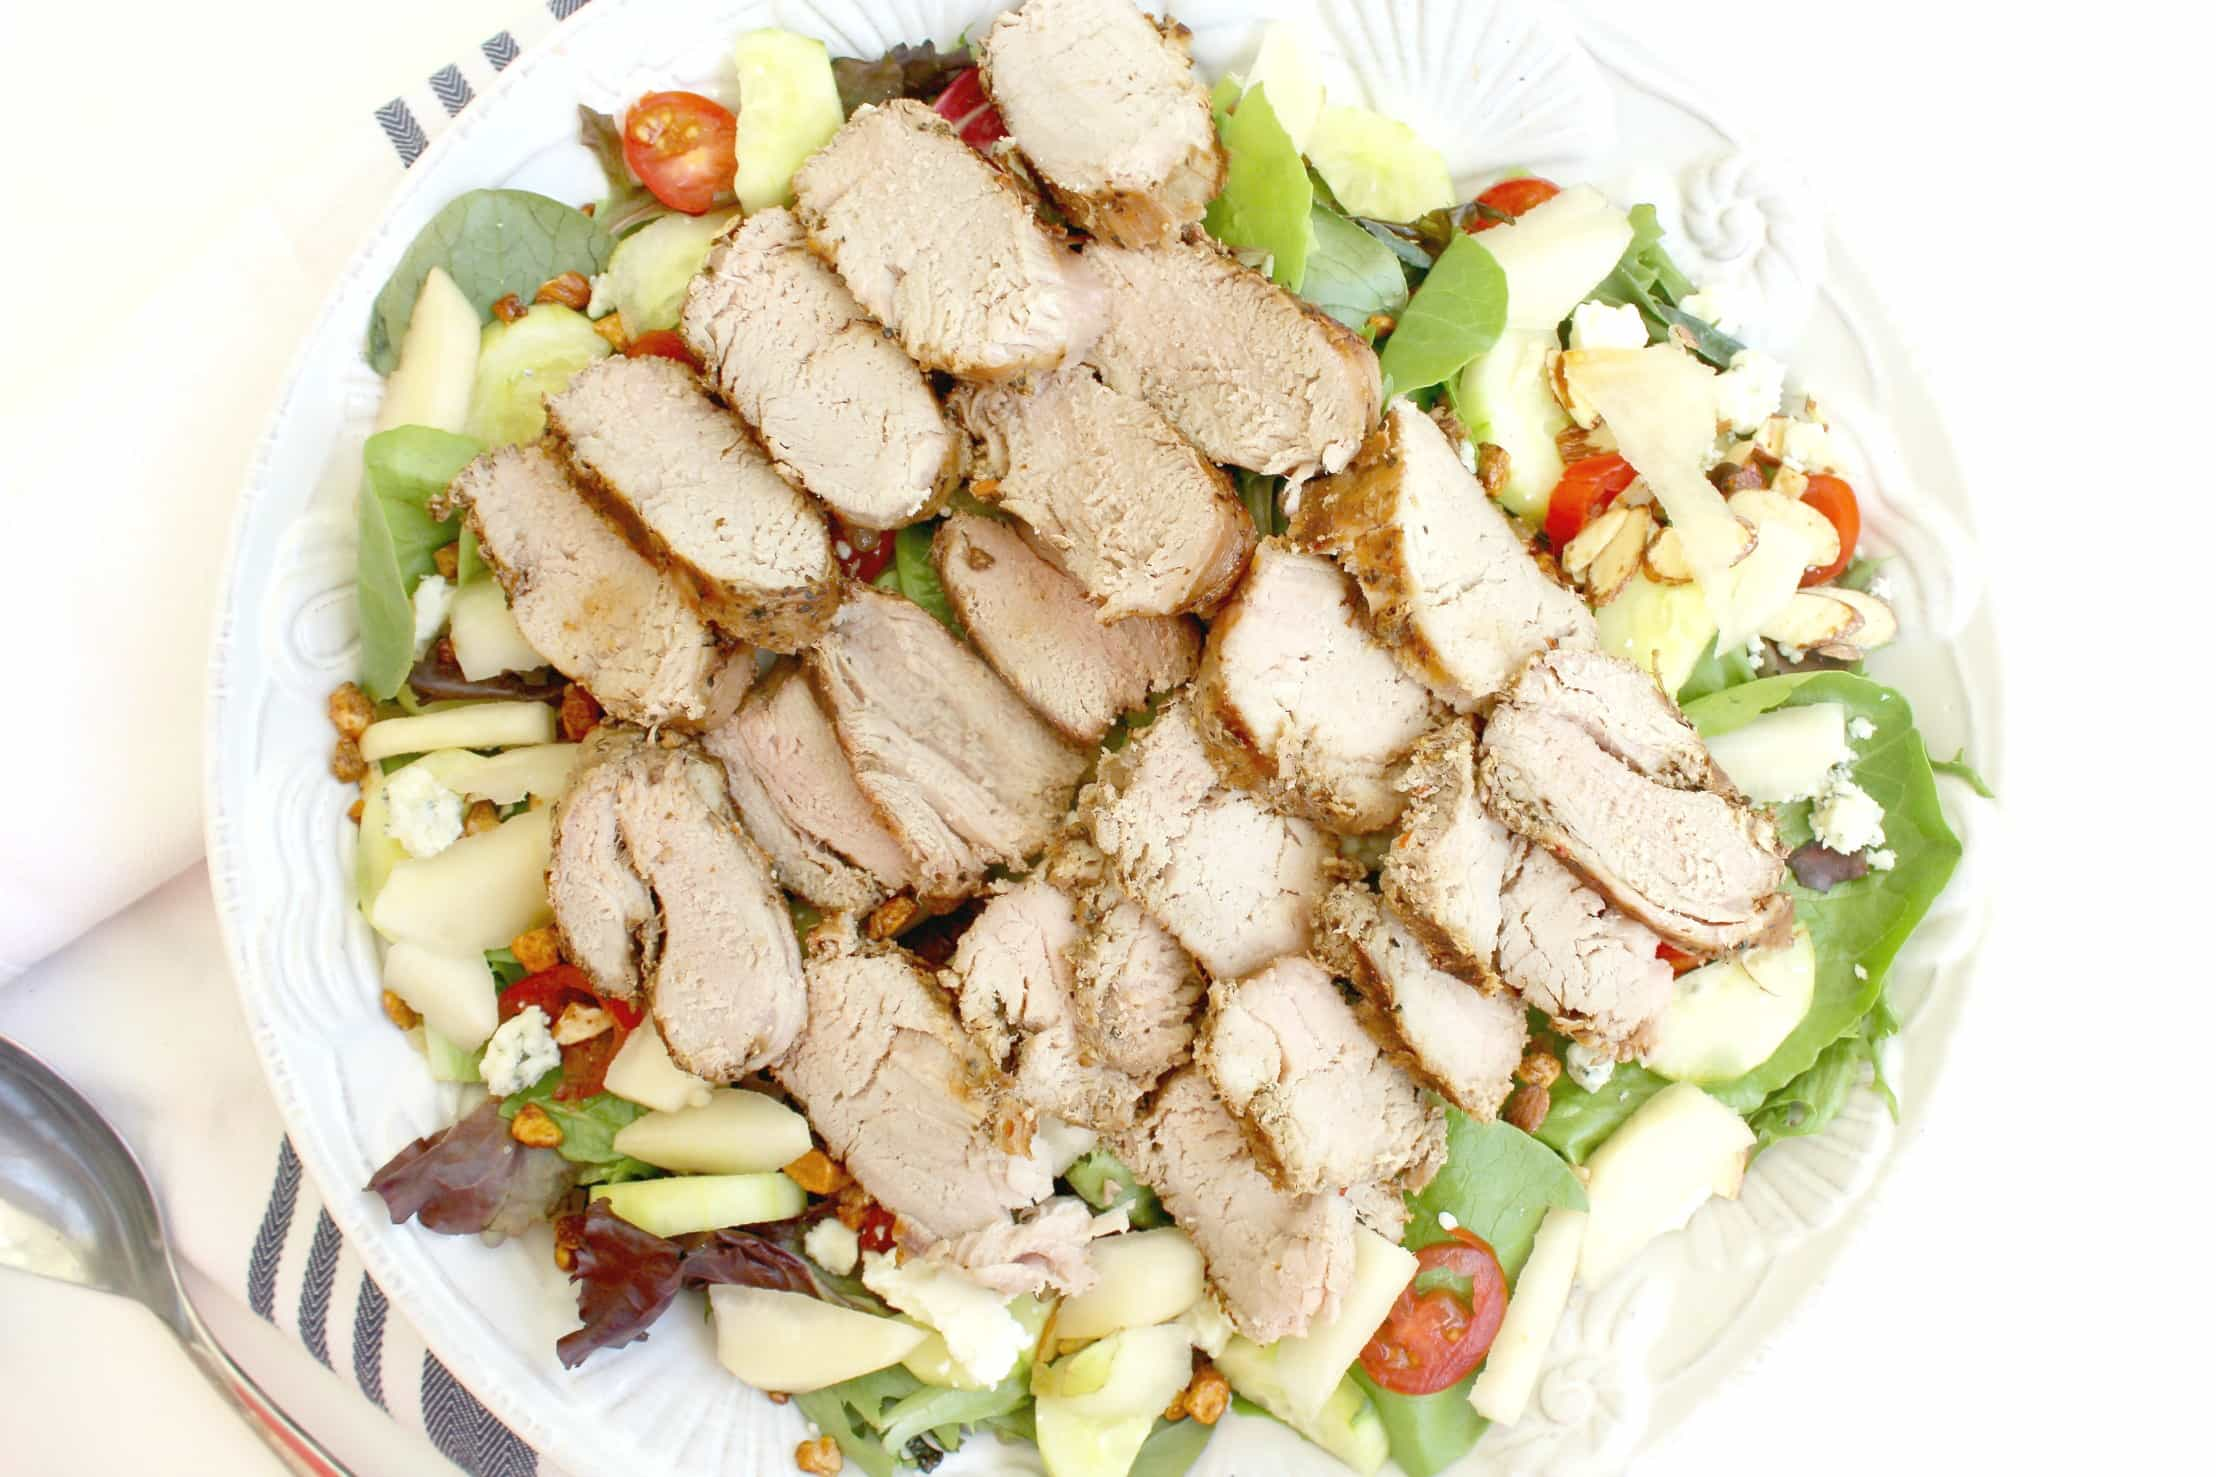 Roasted Garlic & Cracked Black Pepper Pork Loin Gorgonzola Salad